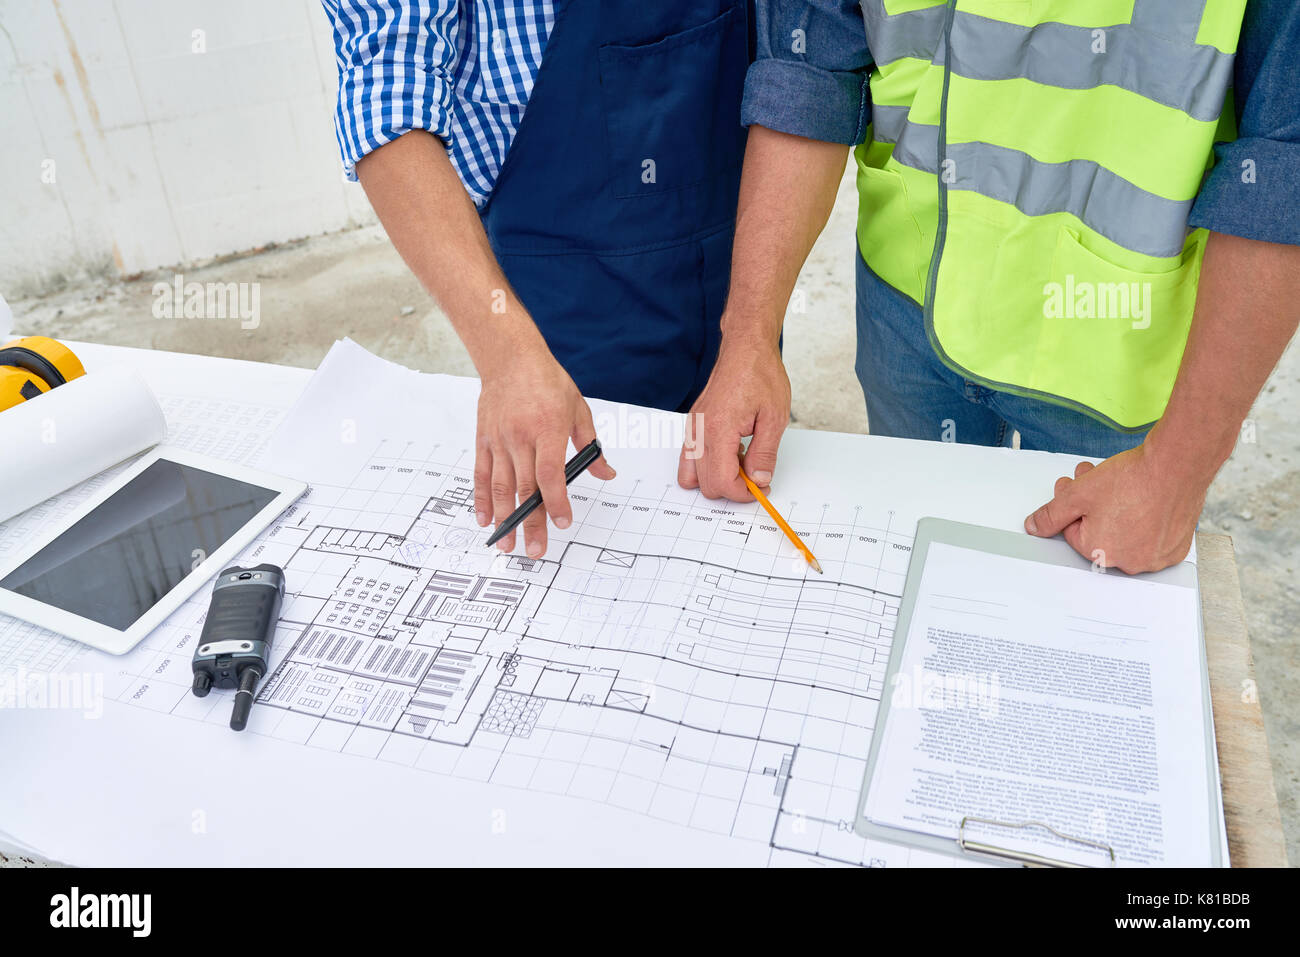 Working Meeting at Construction Site - Stock Image